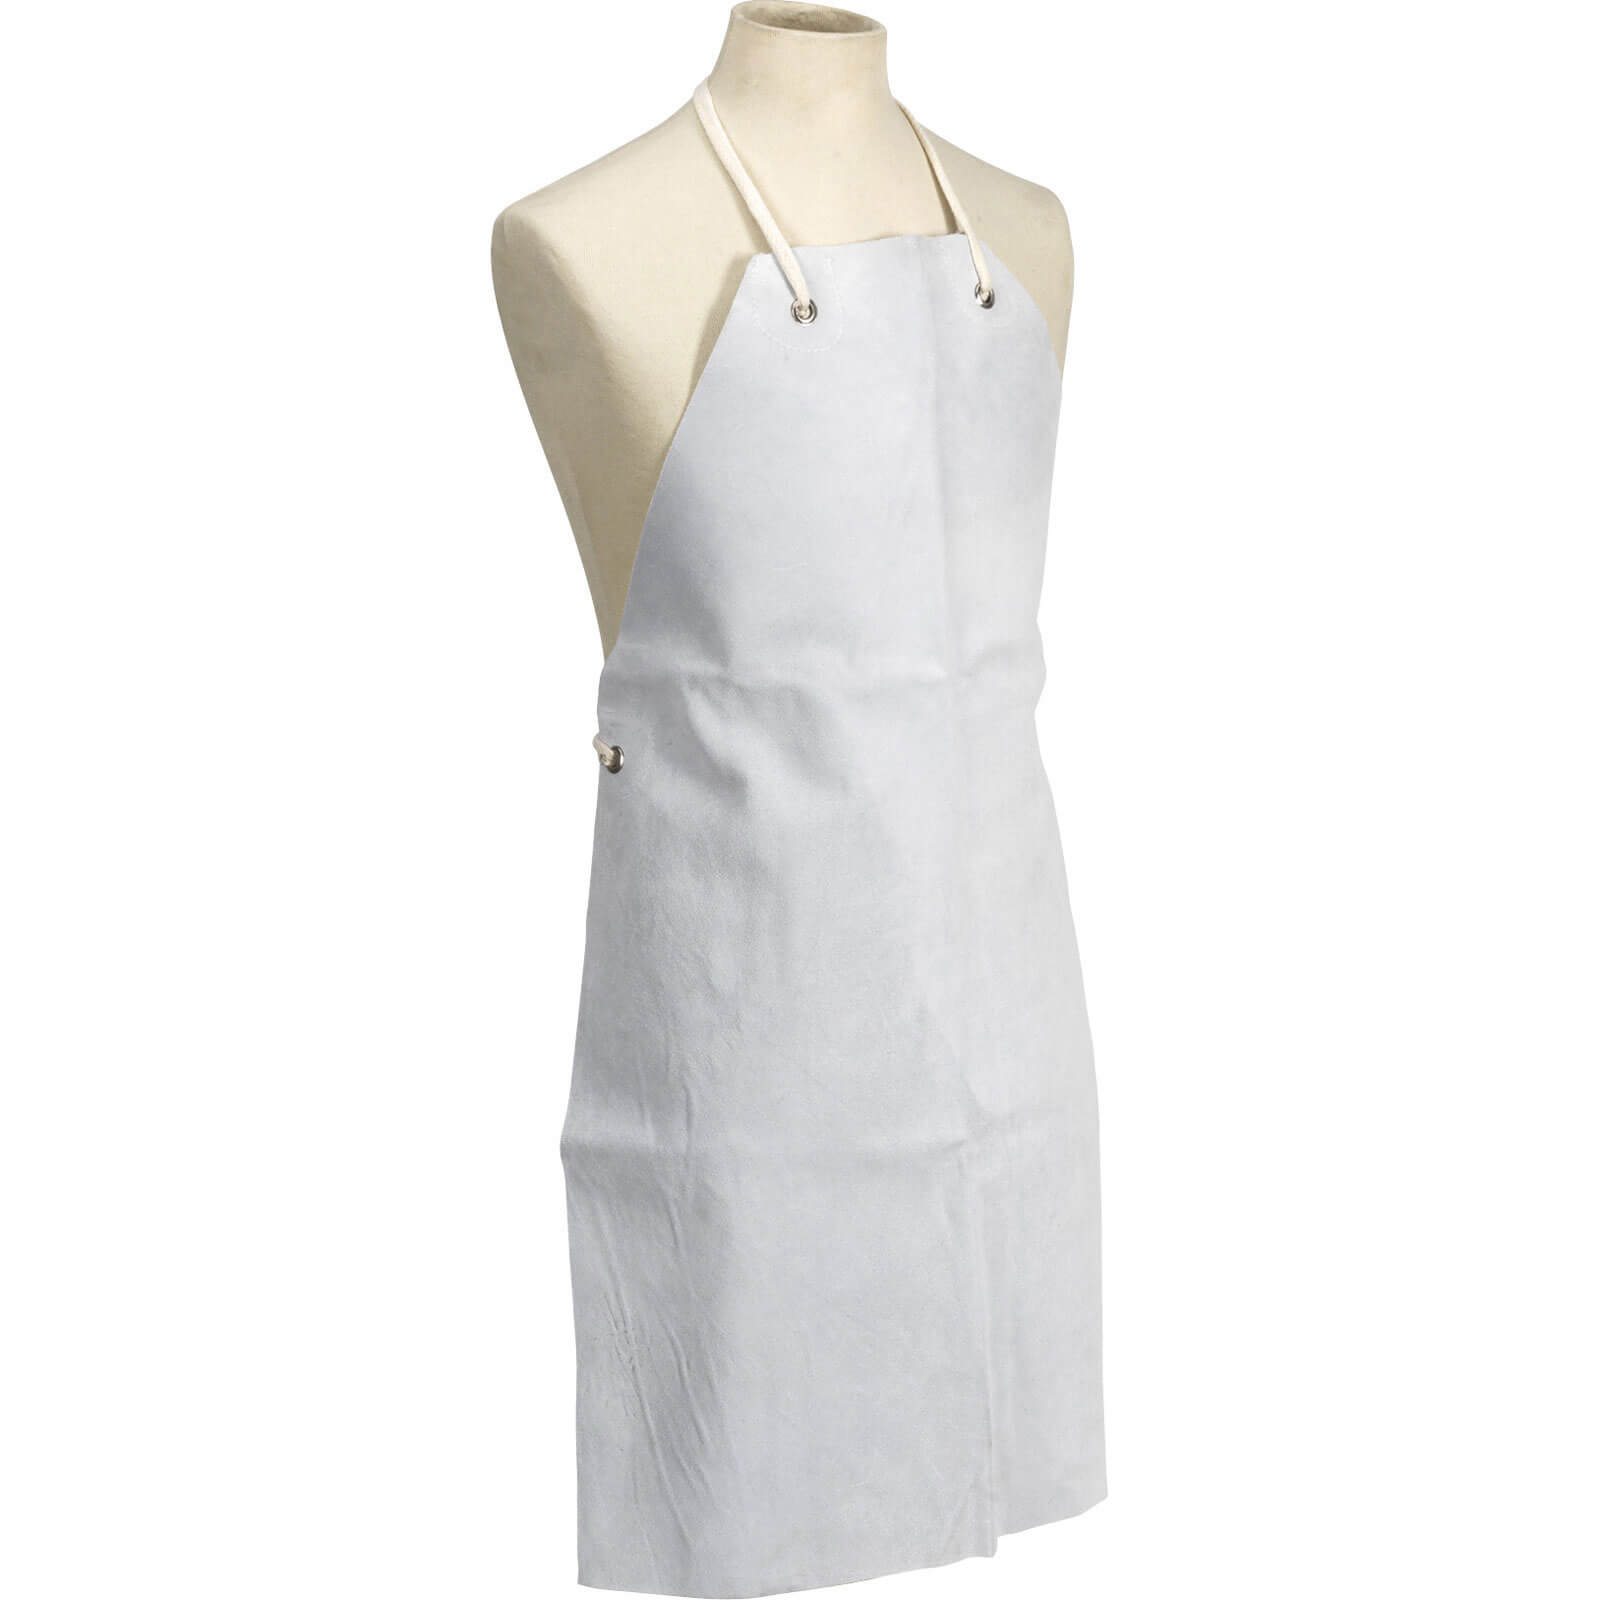 Image of Sealey Leather Welding Apron